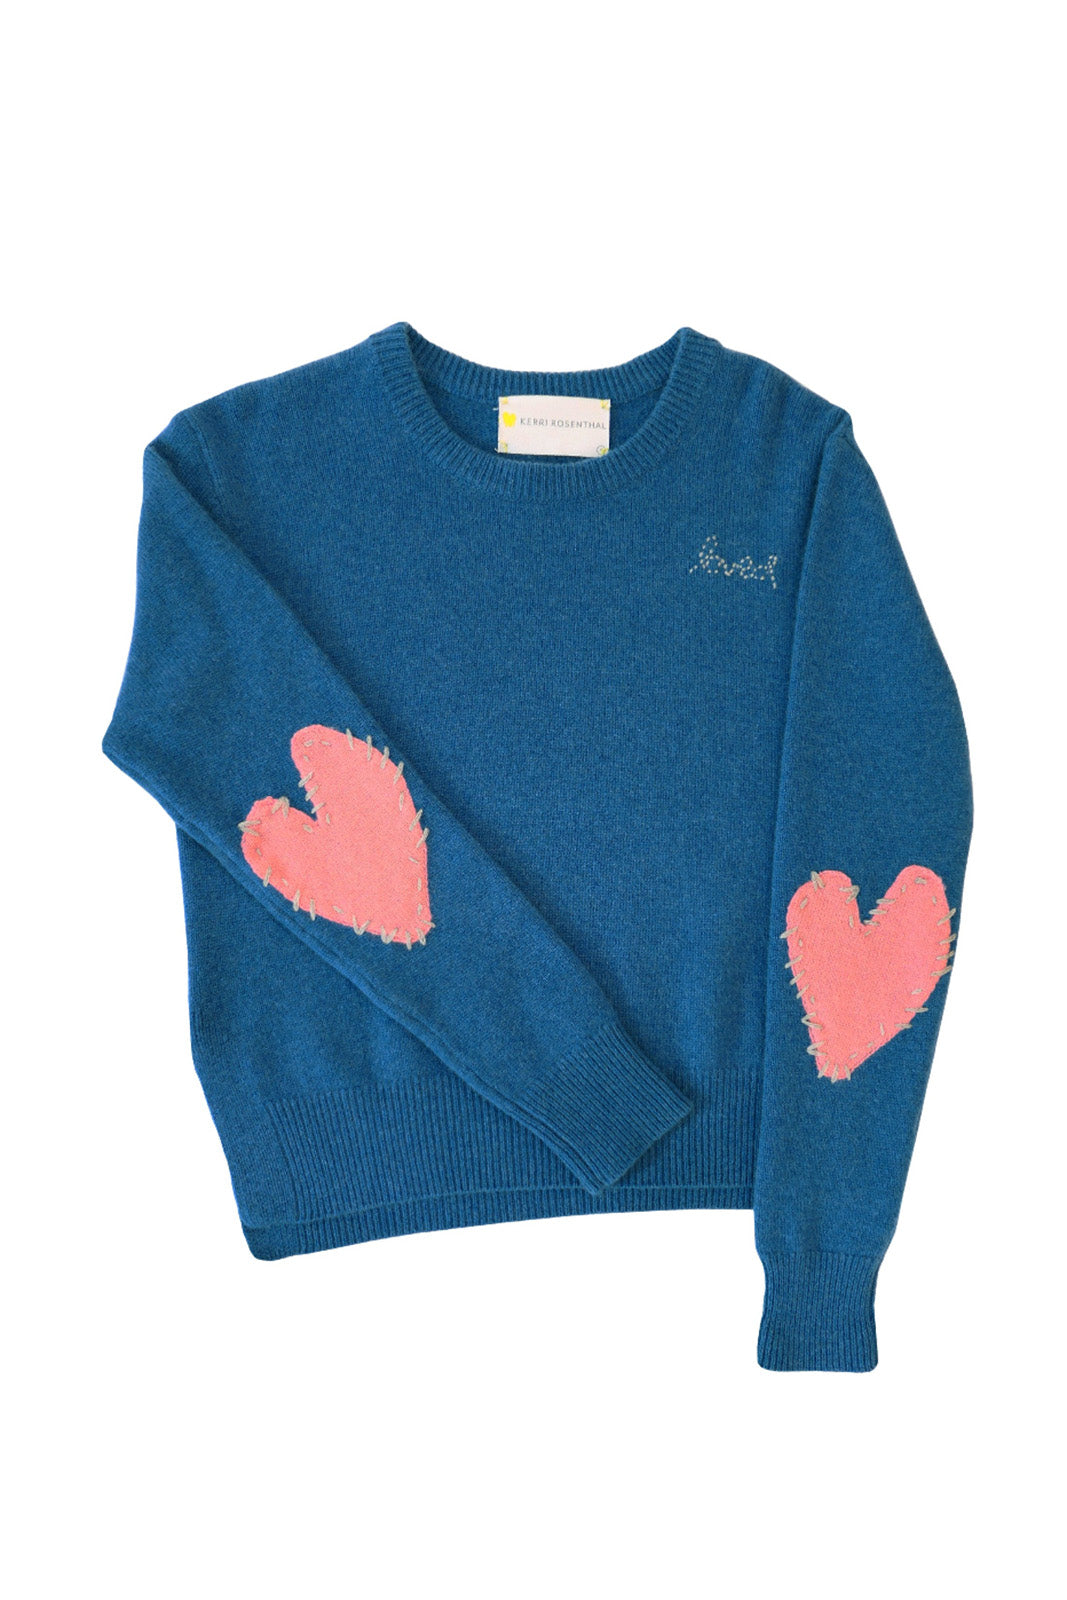 Patchwork Love Cashmere Sweater , Cali Blue + Dusty Pink